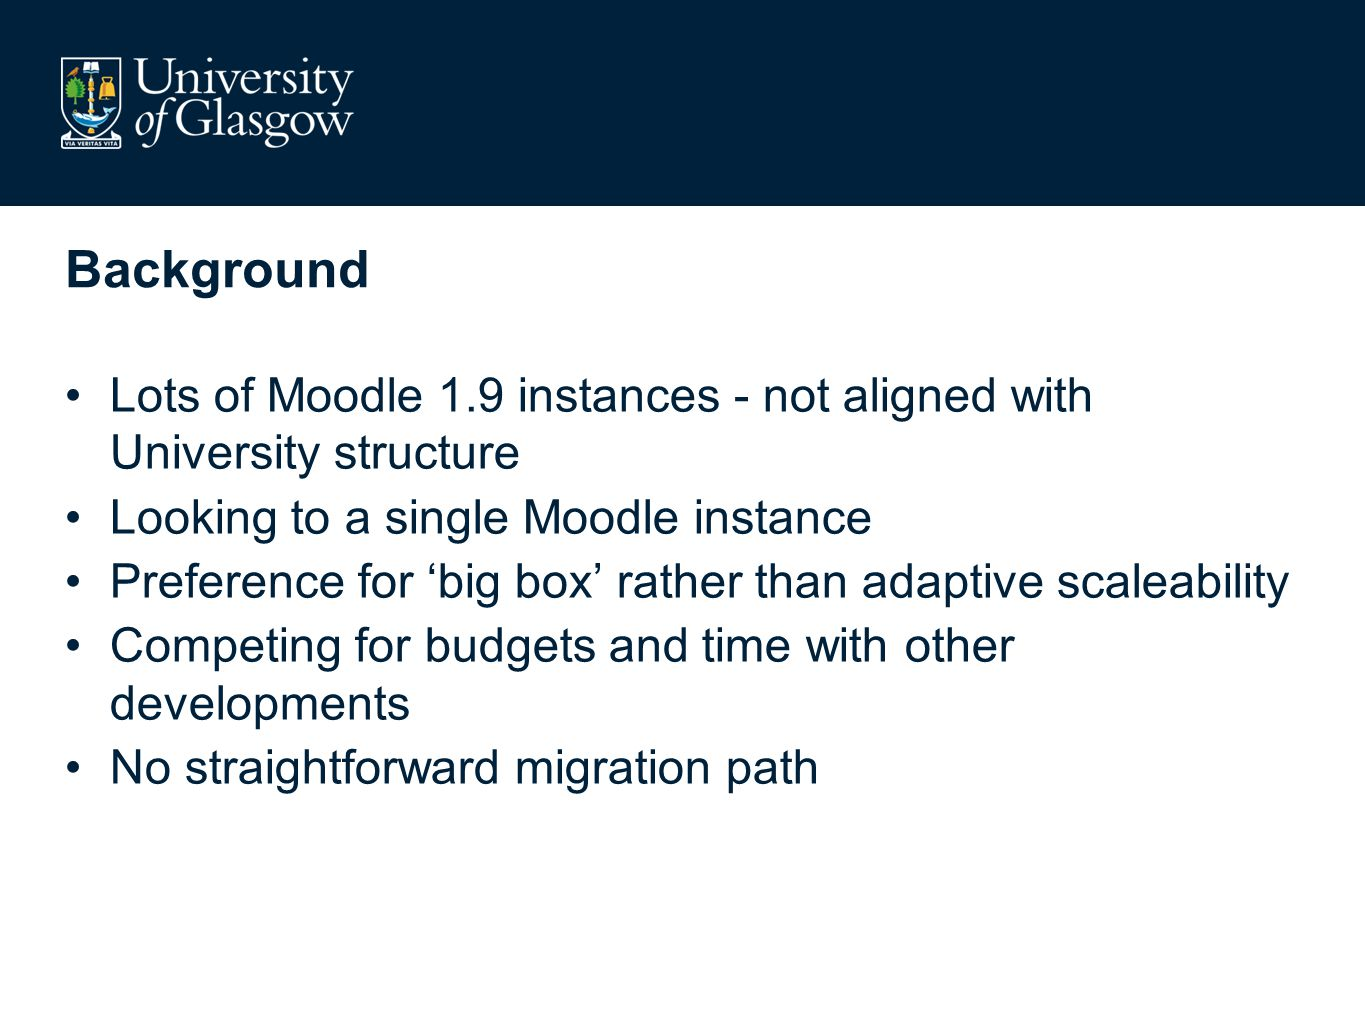 Background Lots of Moodle 1.9 instances - not aligned with University structure Looking to a single Moodle instance Preference for big box rather than adaptive scaleability Competing for budgets and time with other developments No straightforward migration path